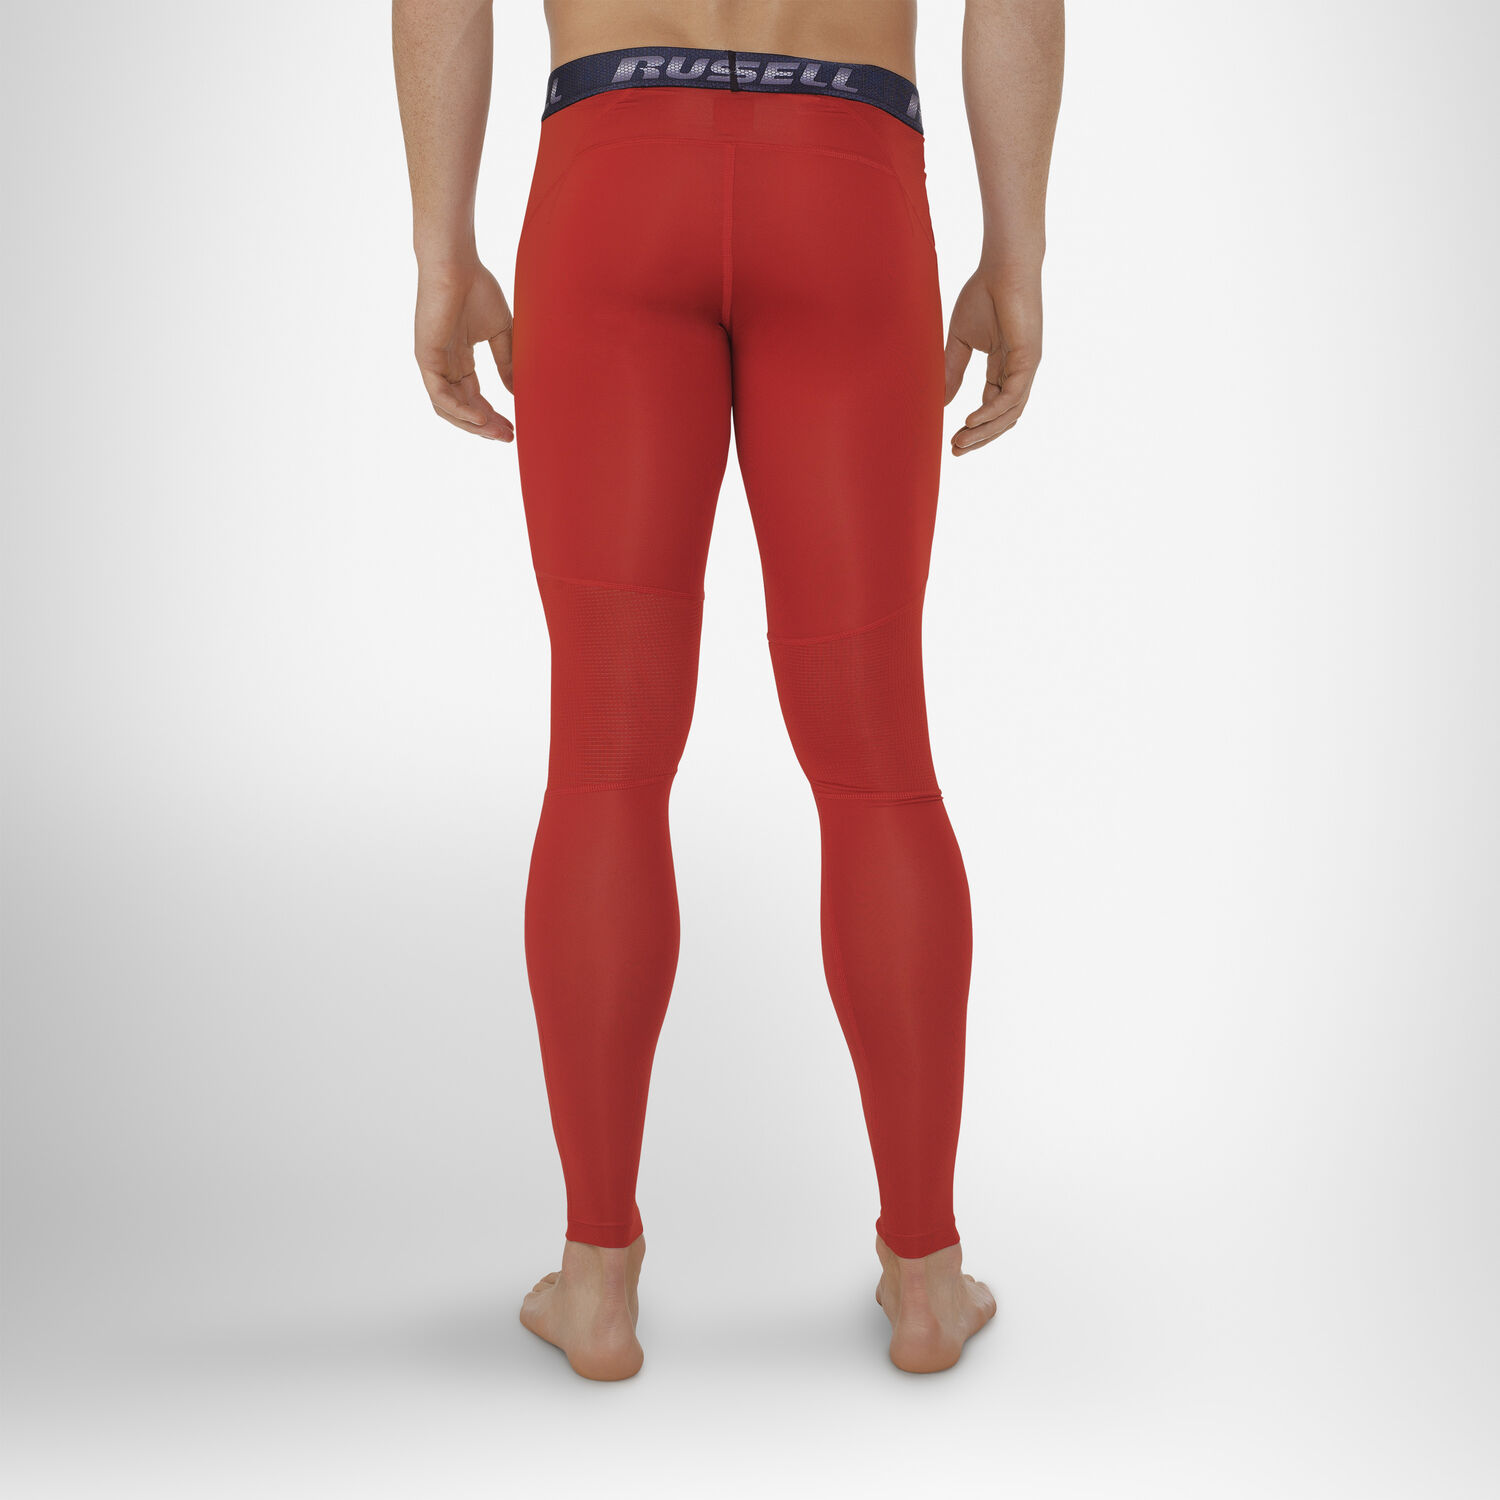 0bb9409b6c Men's Dri-Power® Compression Tights - Russell US | Russell Athletic